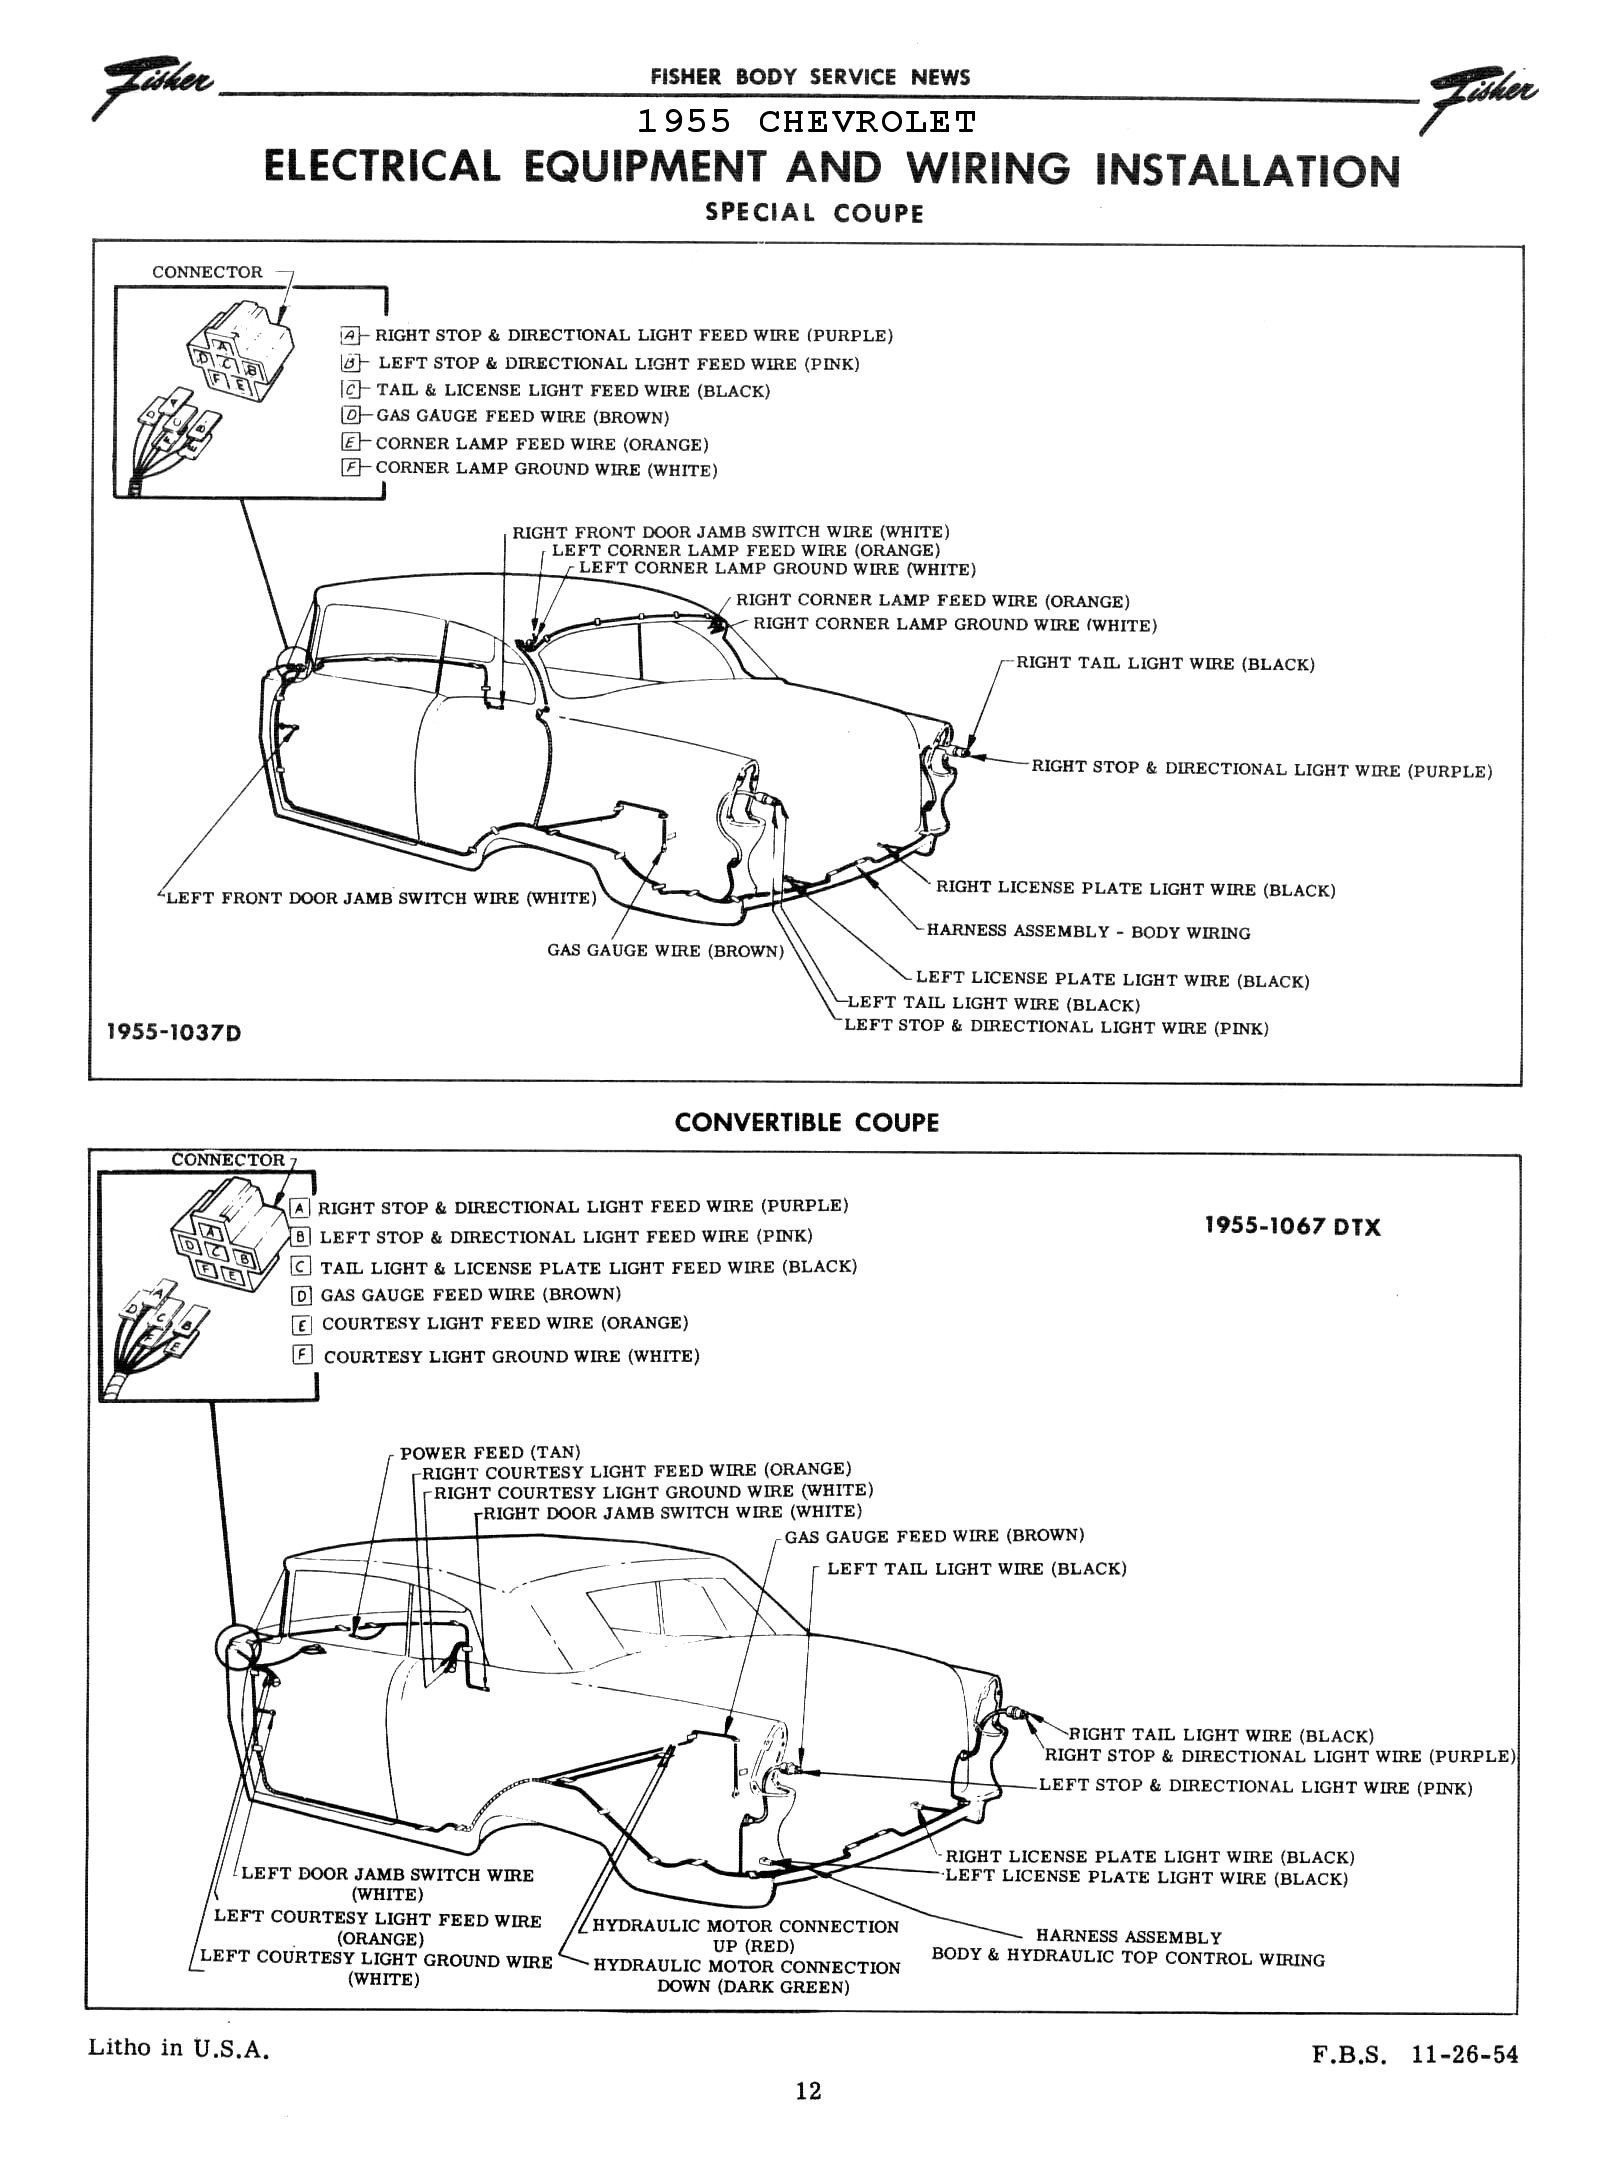 55fsn140612 chevy wiring diagrams 1957 bel air wiring diagram at gsmx.co